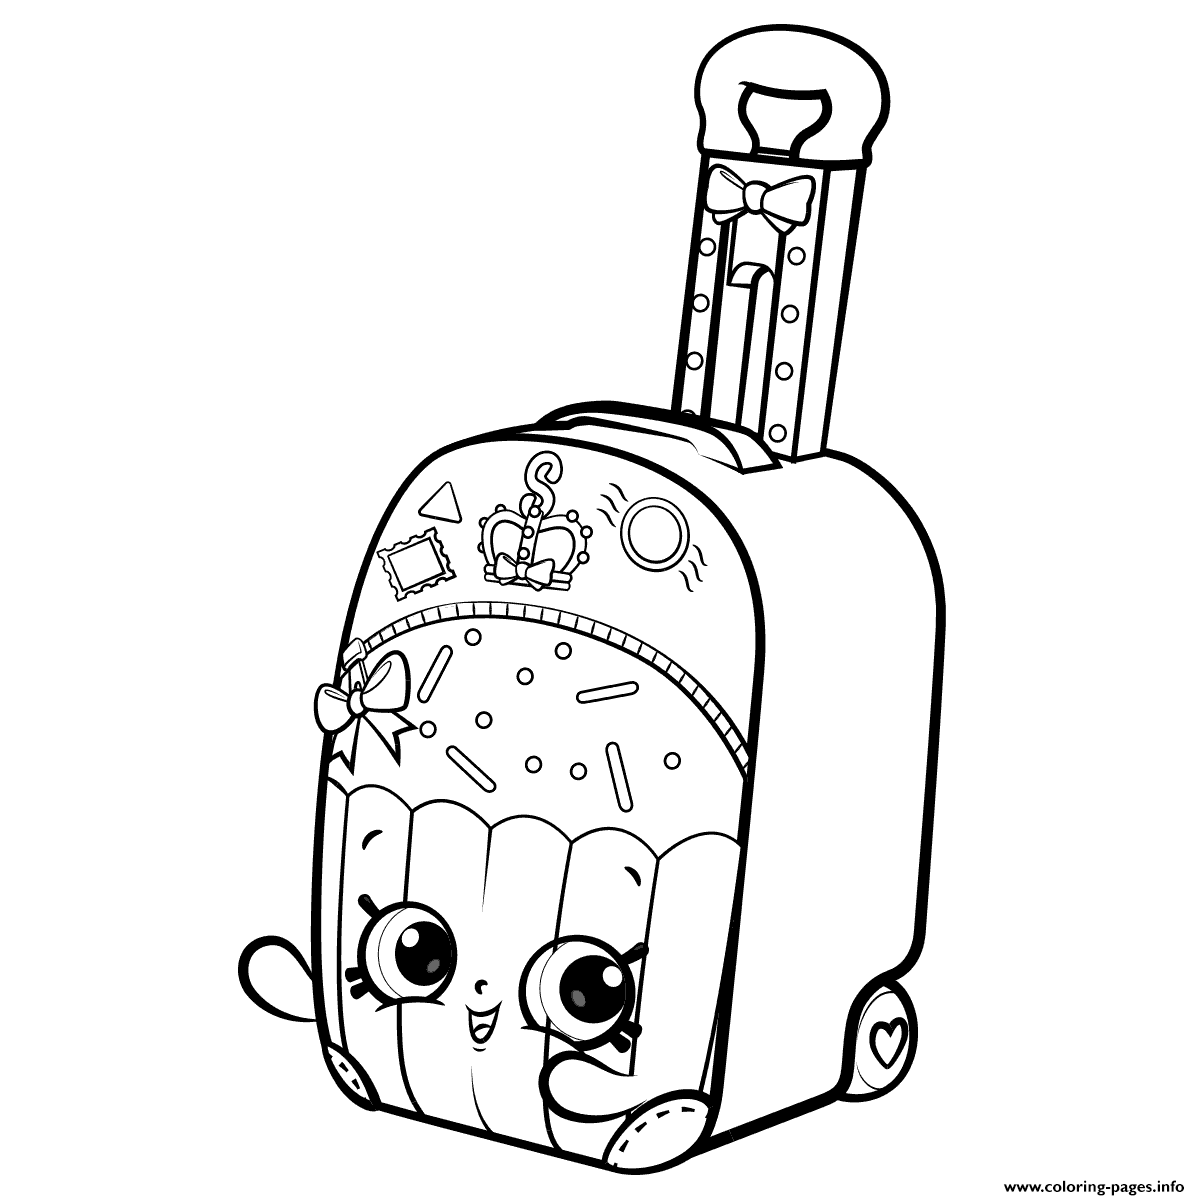 Print Shopkins World Vacation Season 8 Coloring Pages Shopkins Colouring Pages Coloring Pages Shopkins Coloring Pages Free Printable